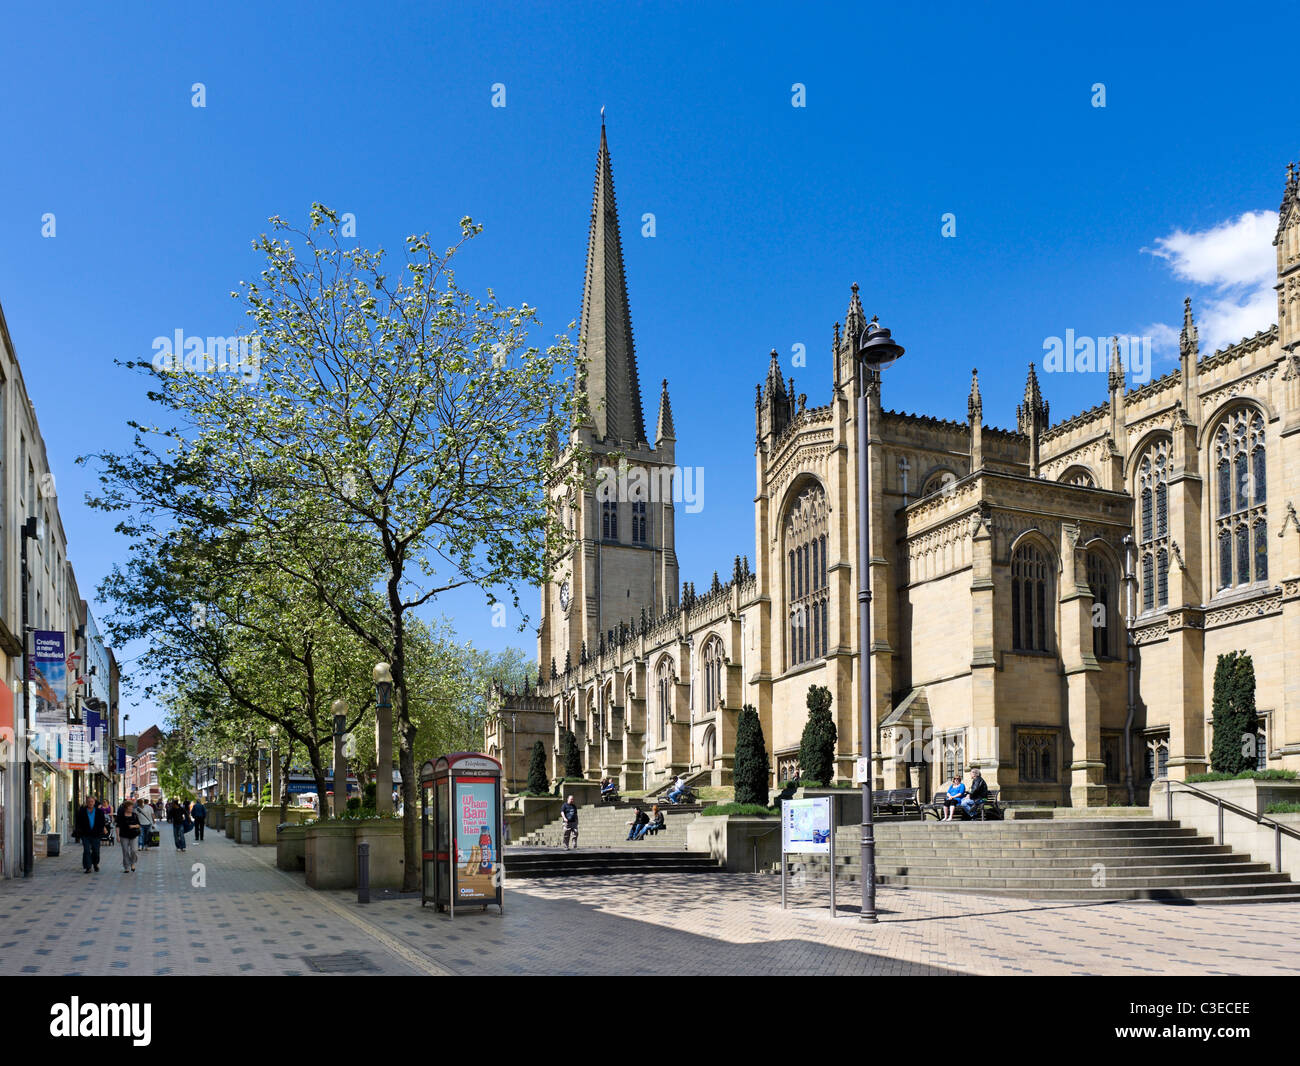 Wakefield Cathedral and shops along Kirkgate/Westgate in the city centre, Wakefield, West Yorkshire, UK - Stock Image